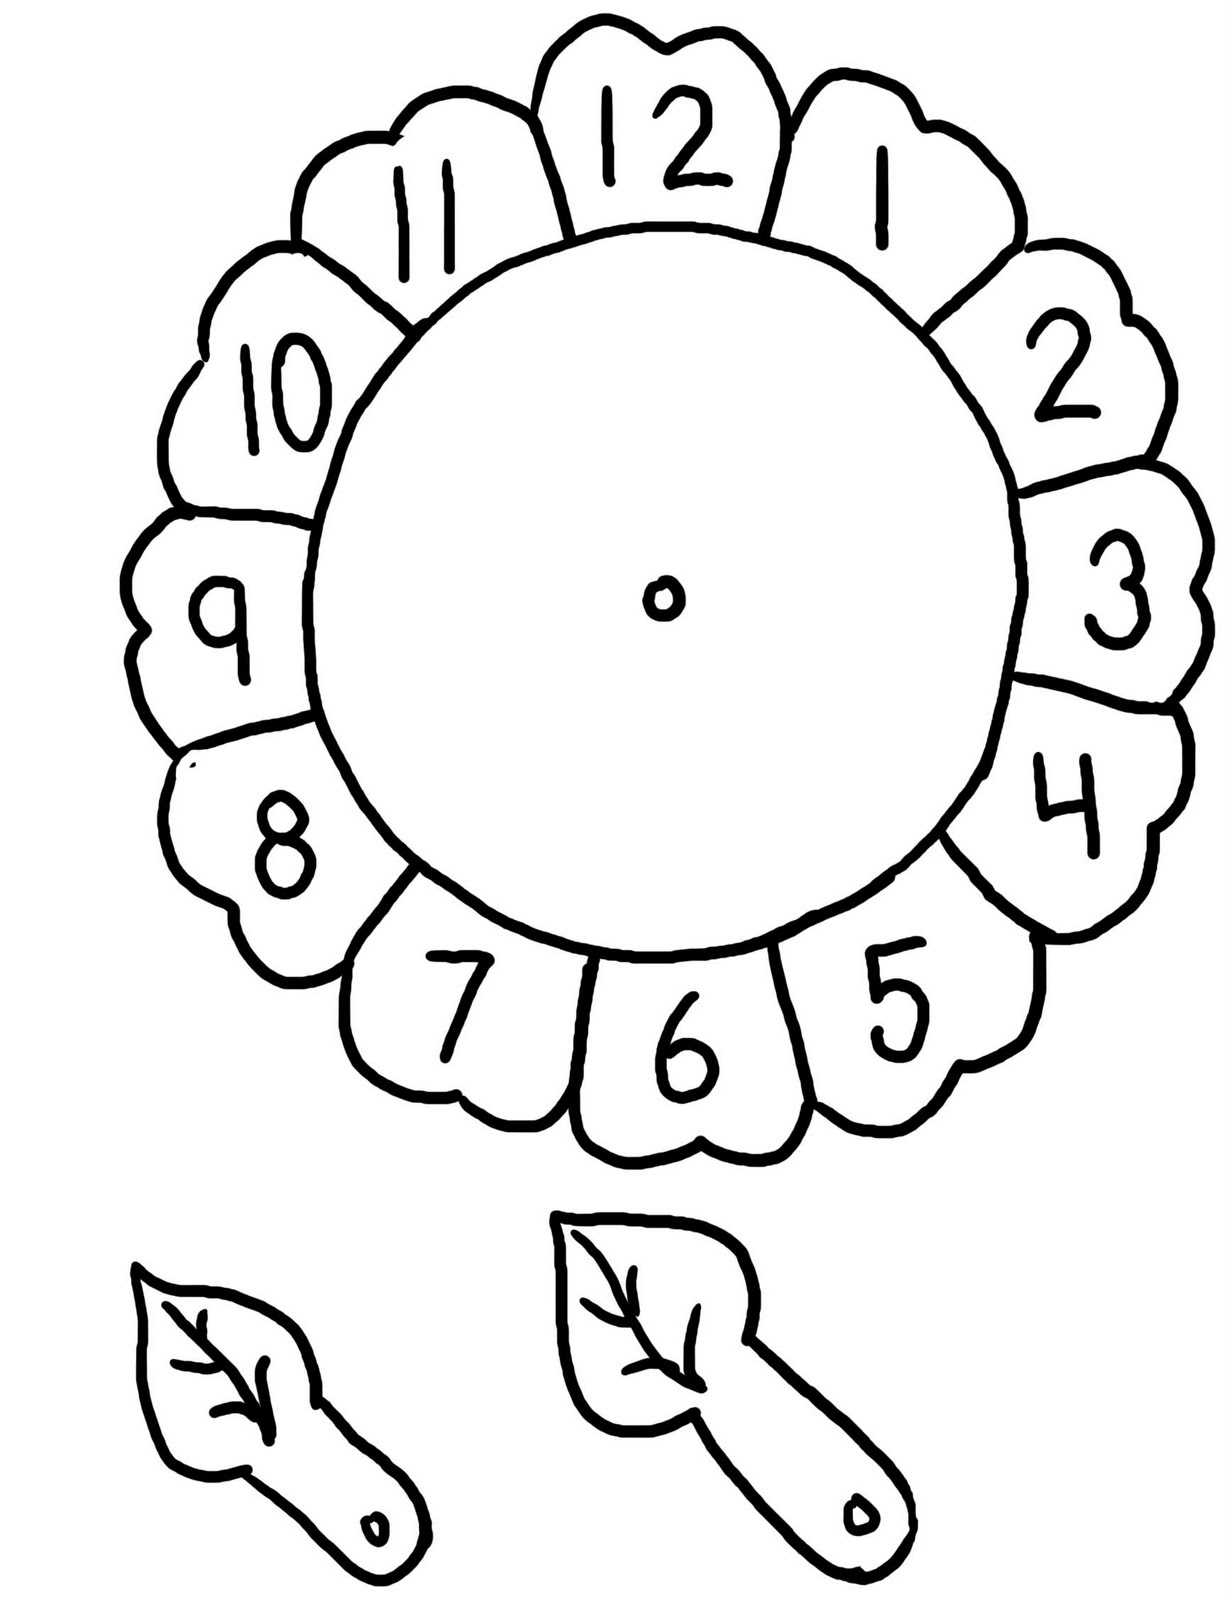 coloring clock for kids coloring pages for kids clock coloring pages for kids coloring clock for kids